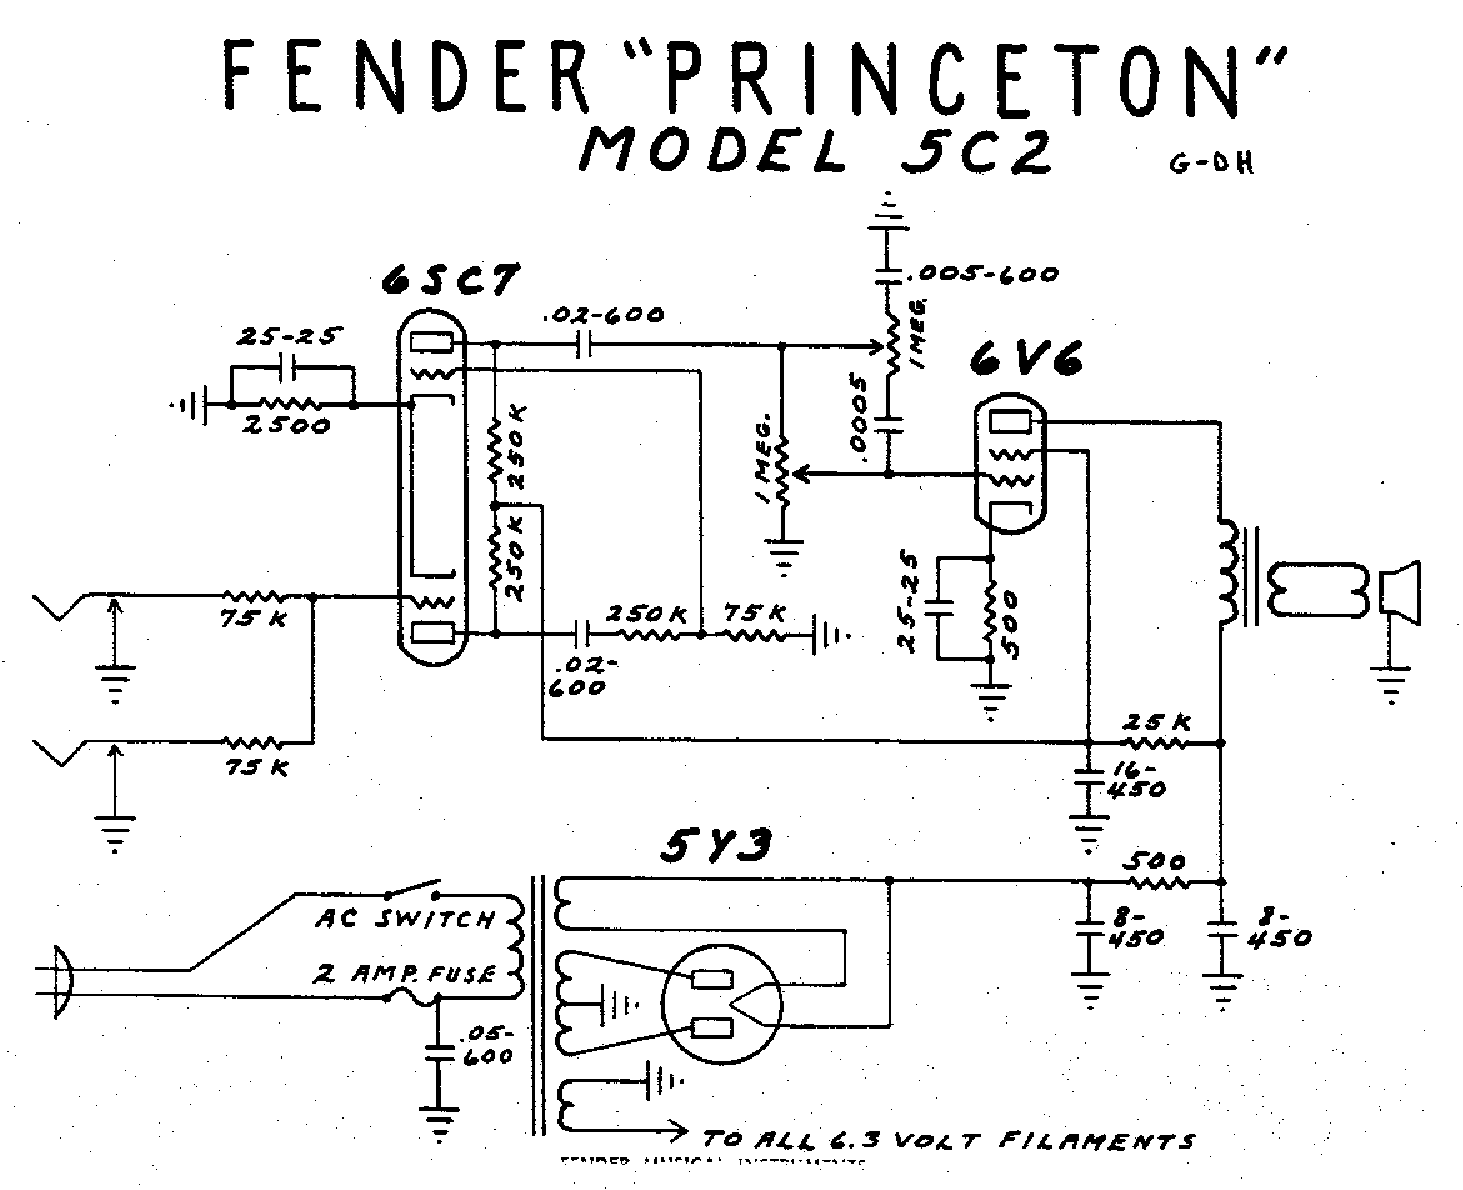 FENDER PRINCETON-5C2 Service Manual download, schematics